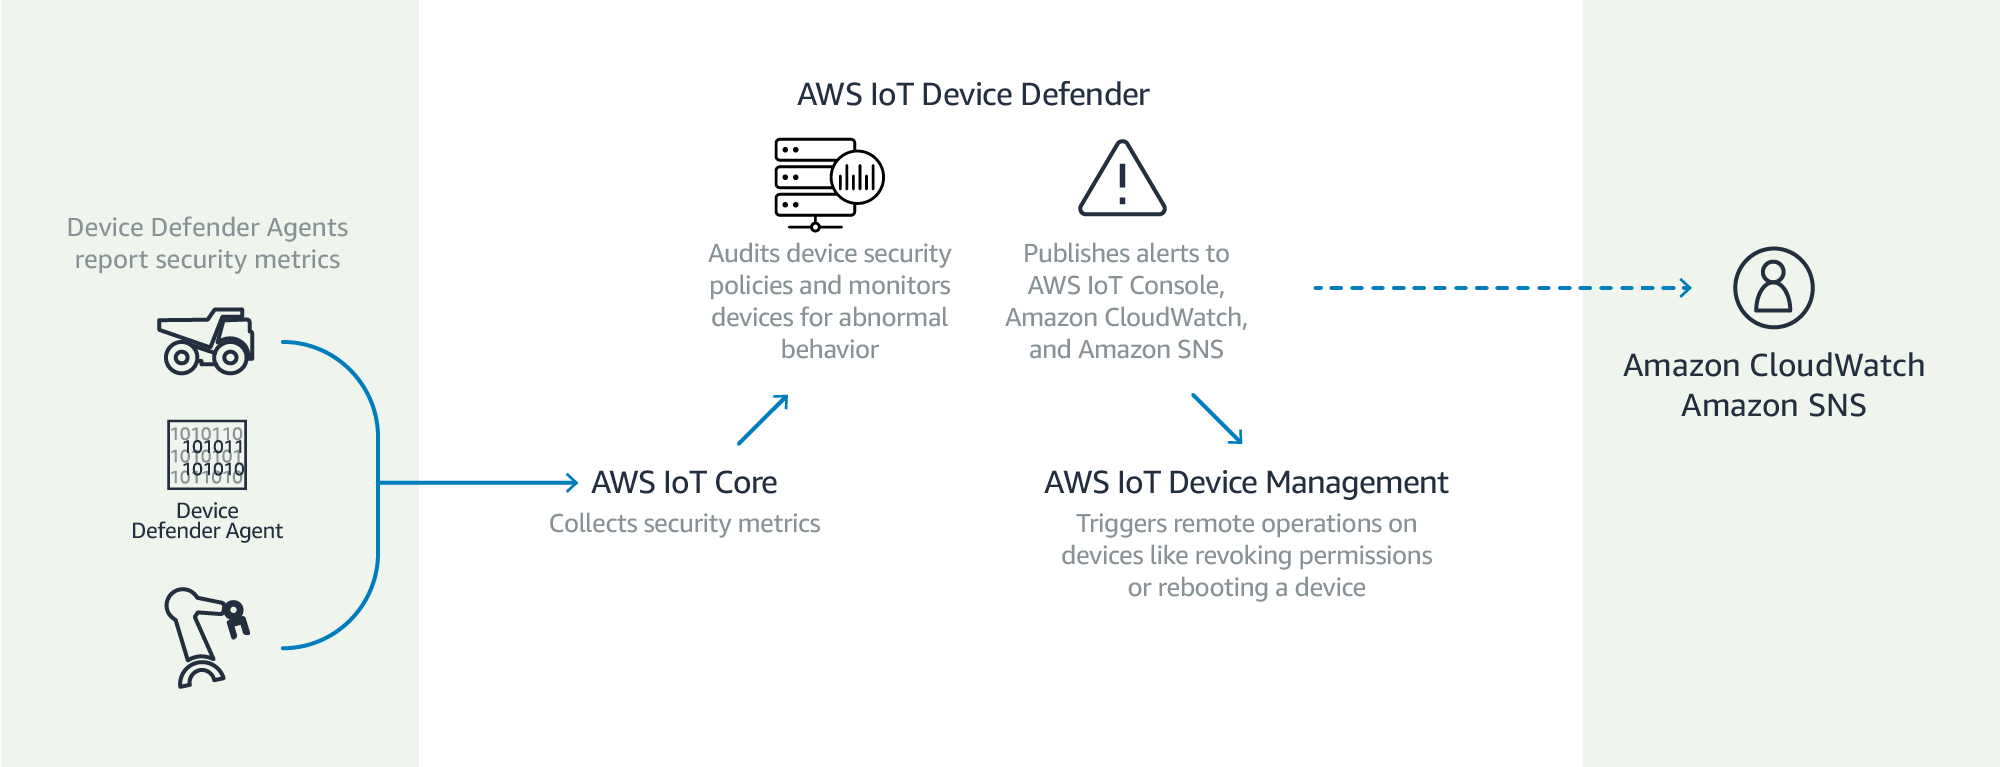 運作方式 – AWS IoT Device Defender